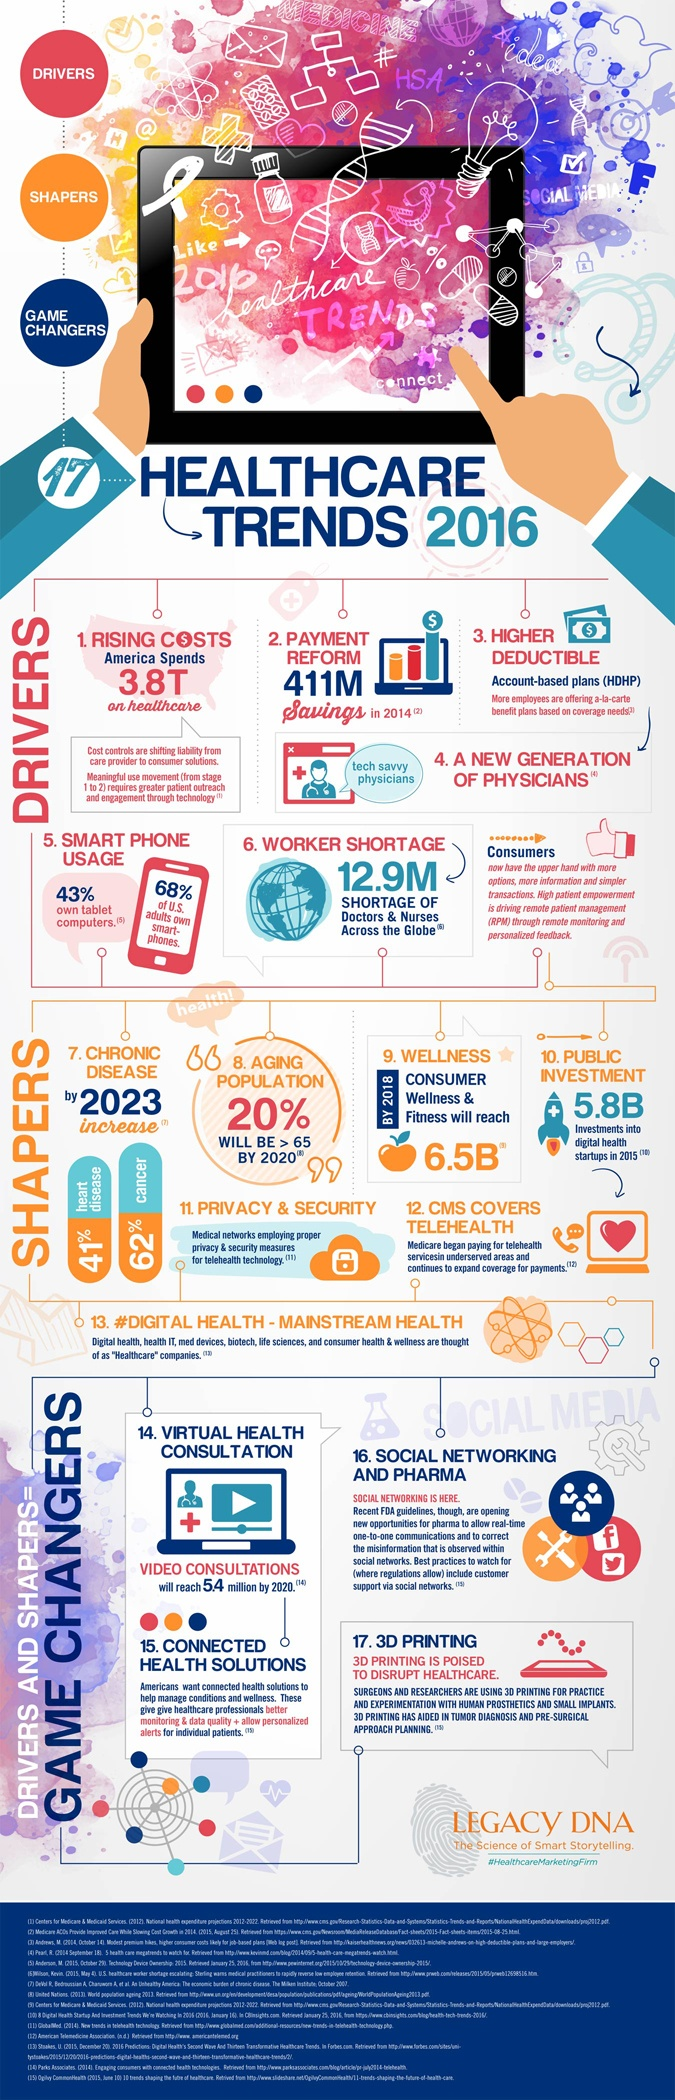 Healthcare Trends 2016